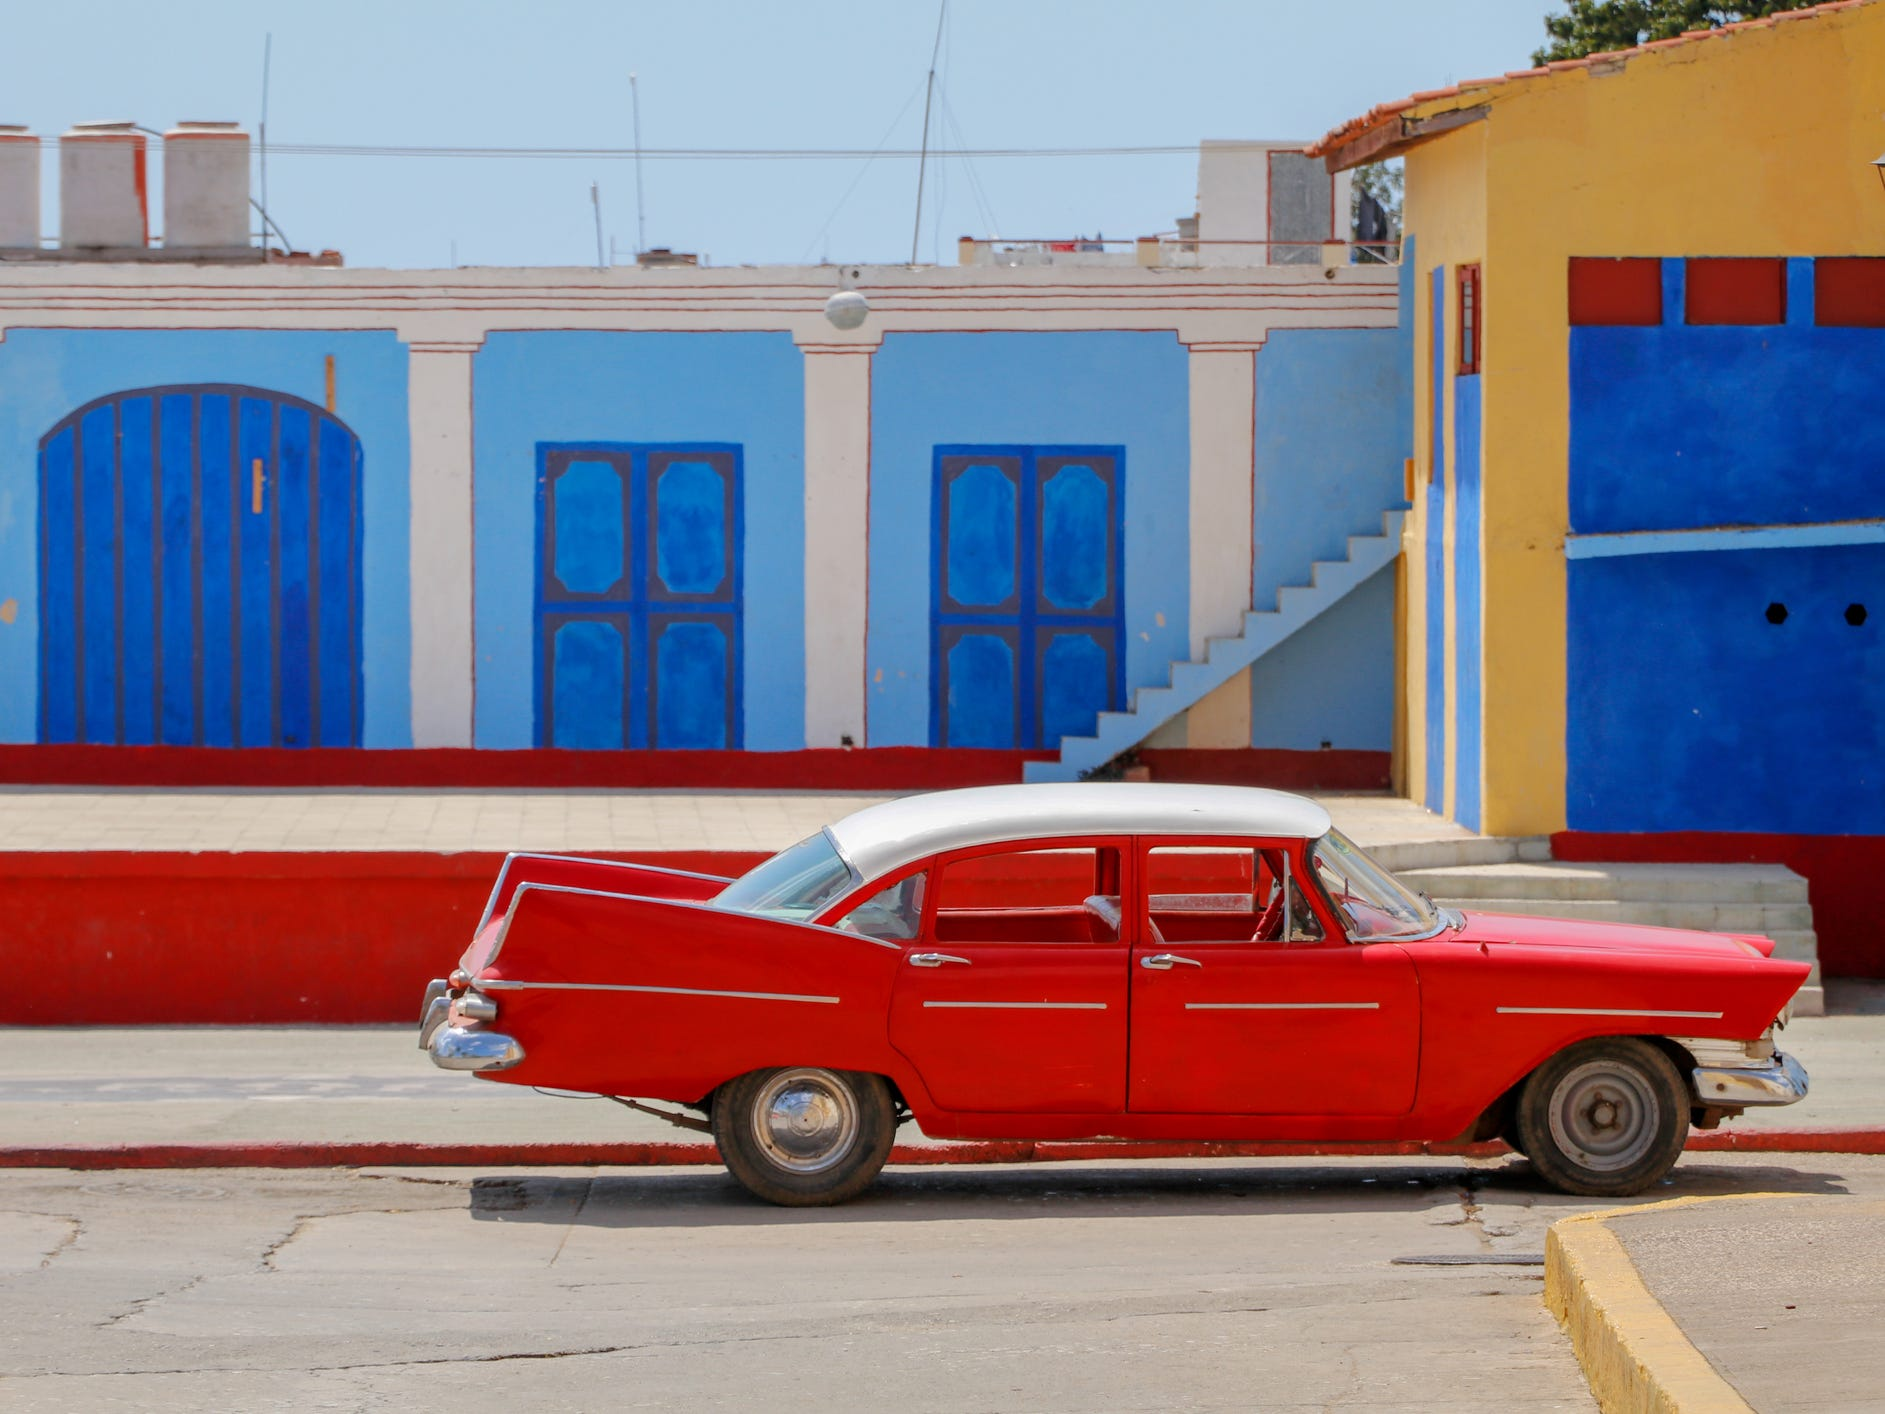 Trinidad, Cuba: With its cobblestone streets, vintage American cars, and historic buildings painted every shade of blue, yellow, pink and green, this colorful city offers endless fodder for your Instagram feed.